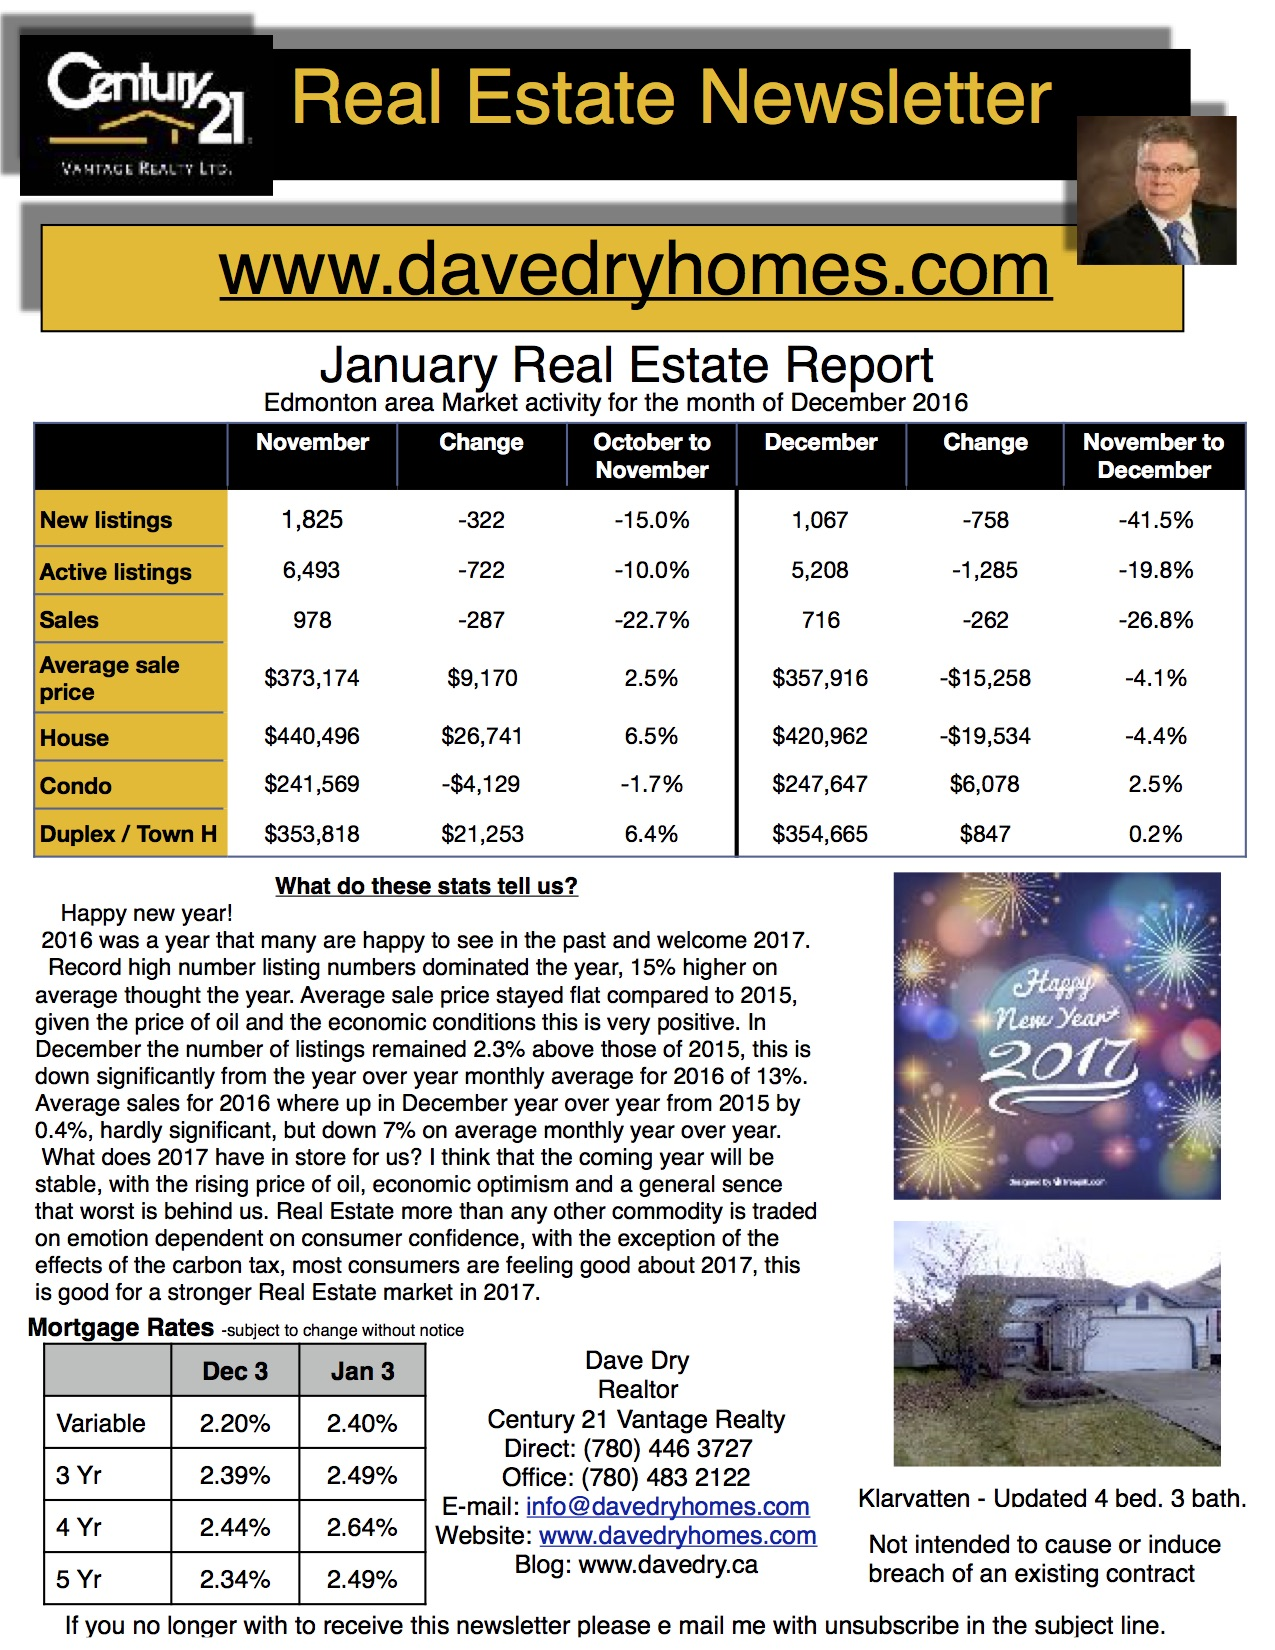 January 2017 Real Estate Newsletter